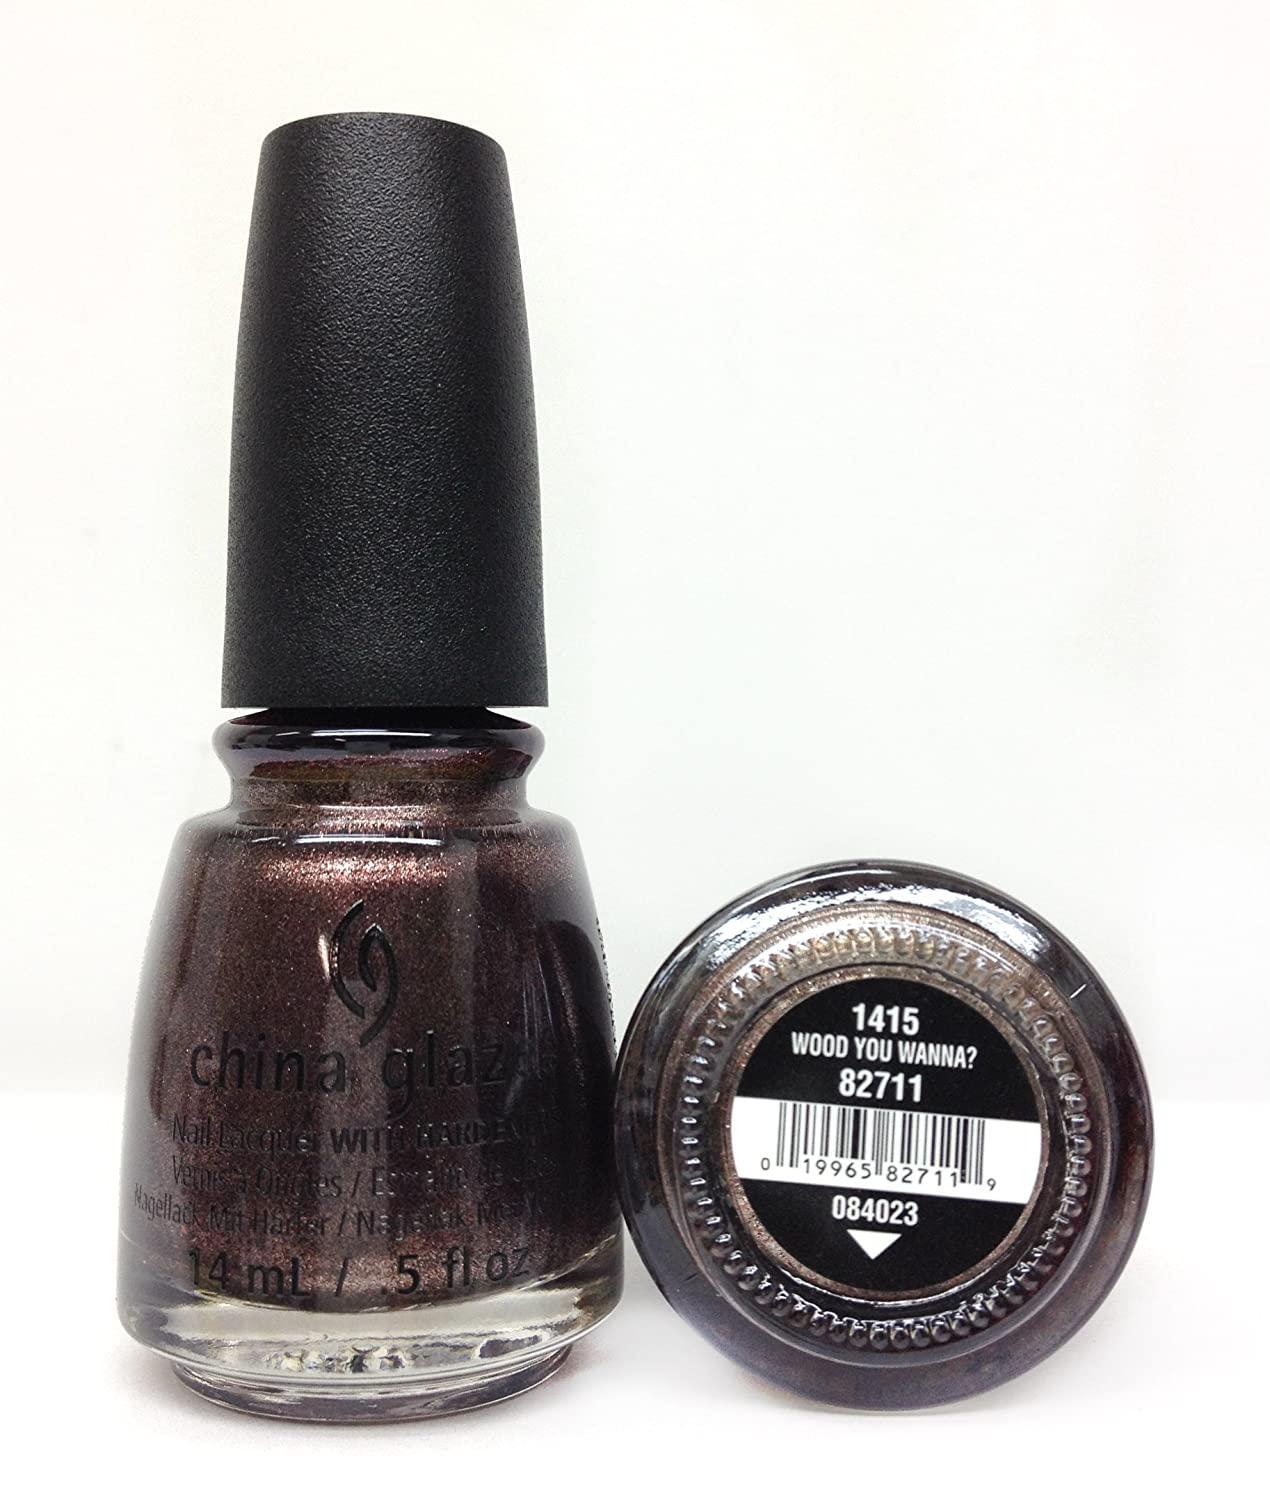 Amazon.com : China Glaze The Great Outdoors Nail Lacquer, Wood You ...